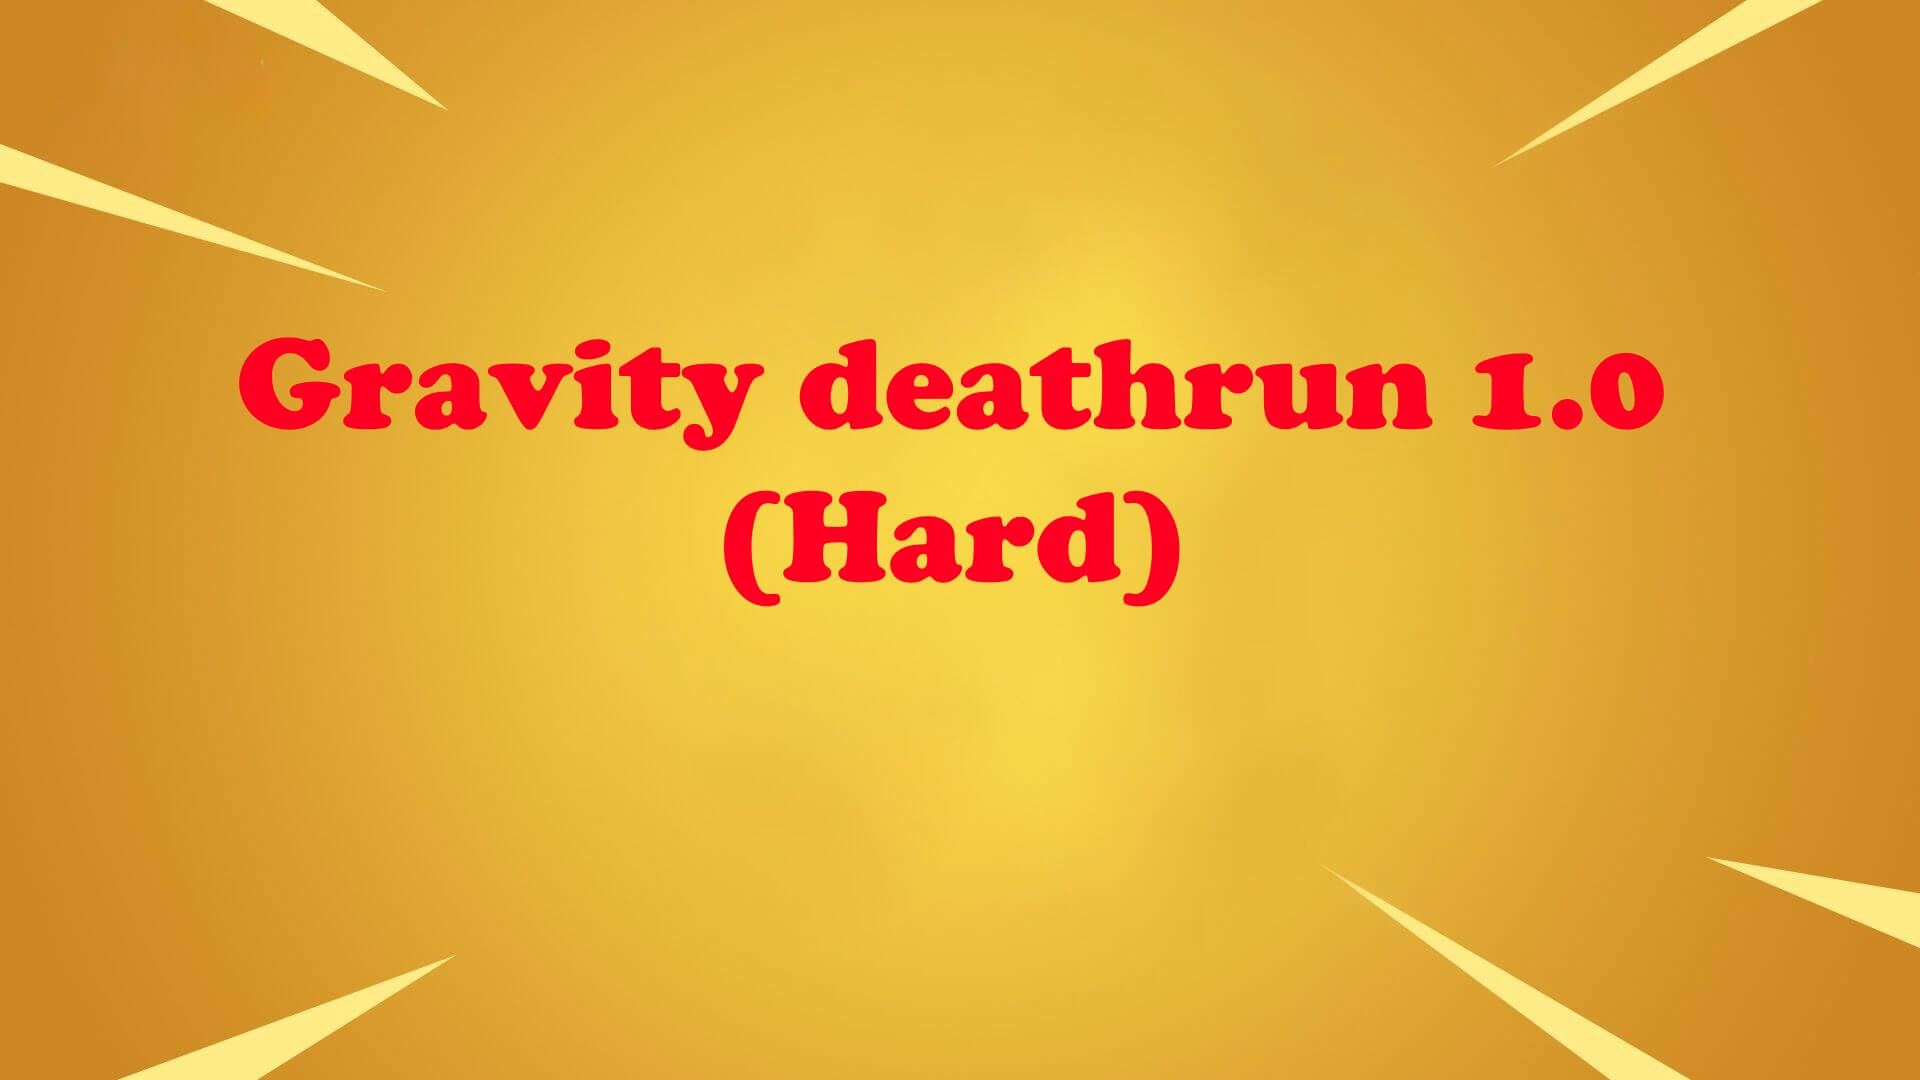 GRAVITY DEATHRUN 1.0 (HARD)